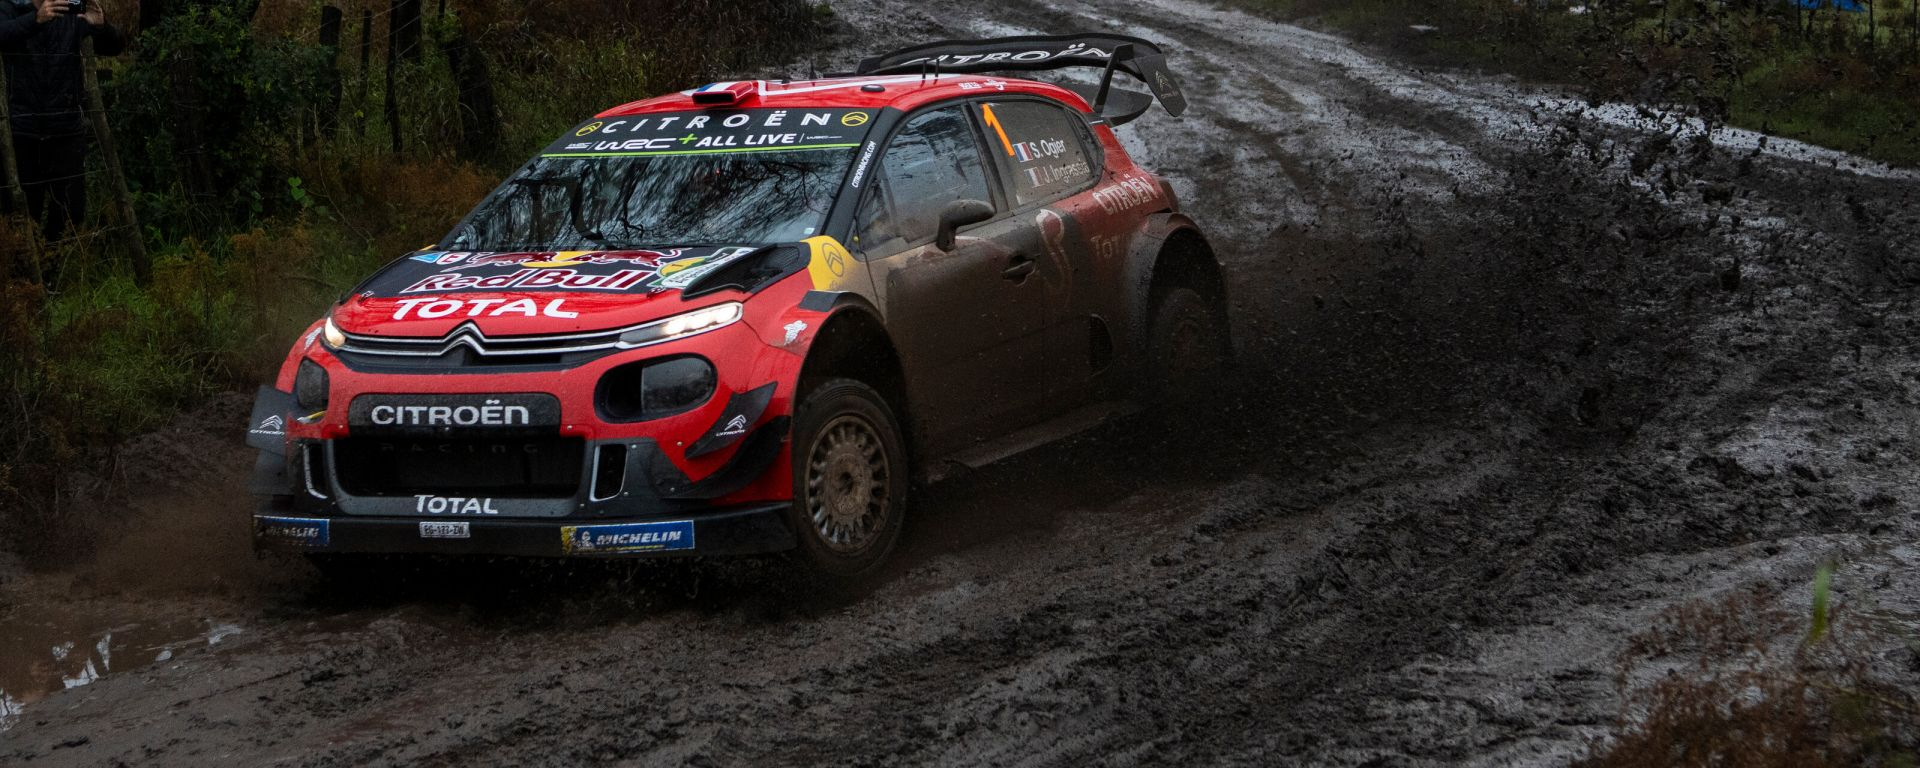 Ogier - Citroen C3 wrc plus